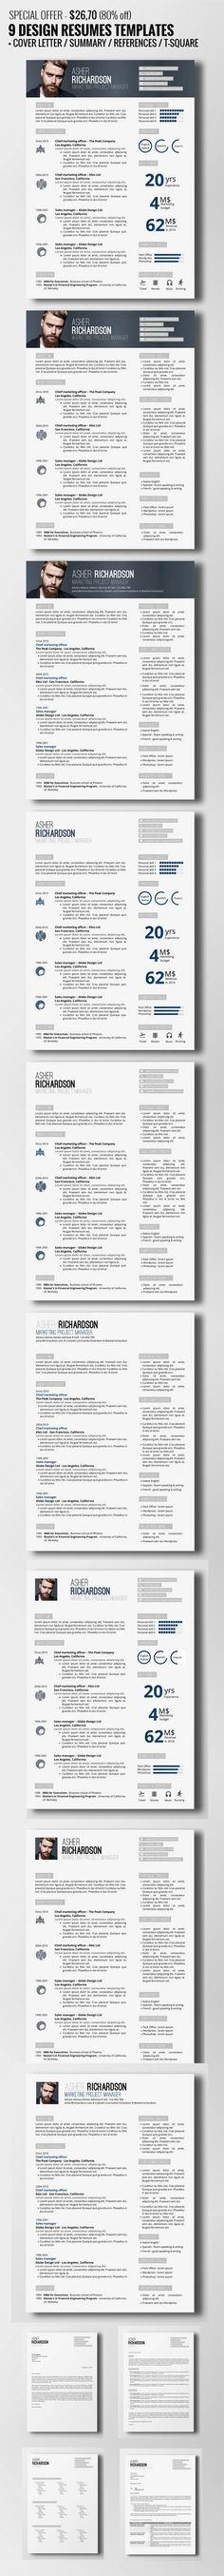 435 best Resume images on Pinterest Resume design, Design resume - project engineer job description